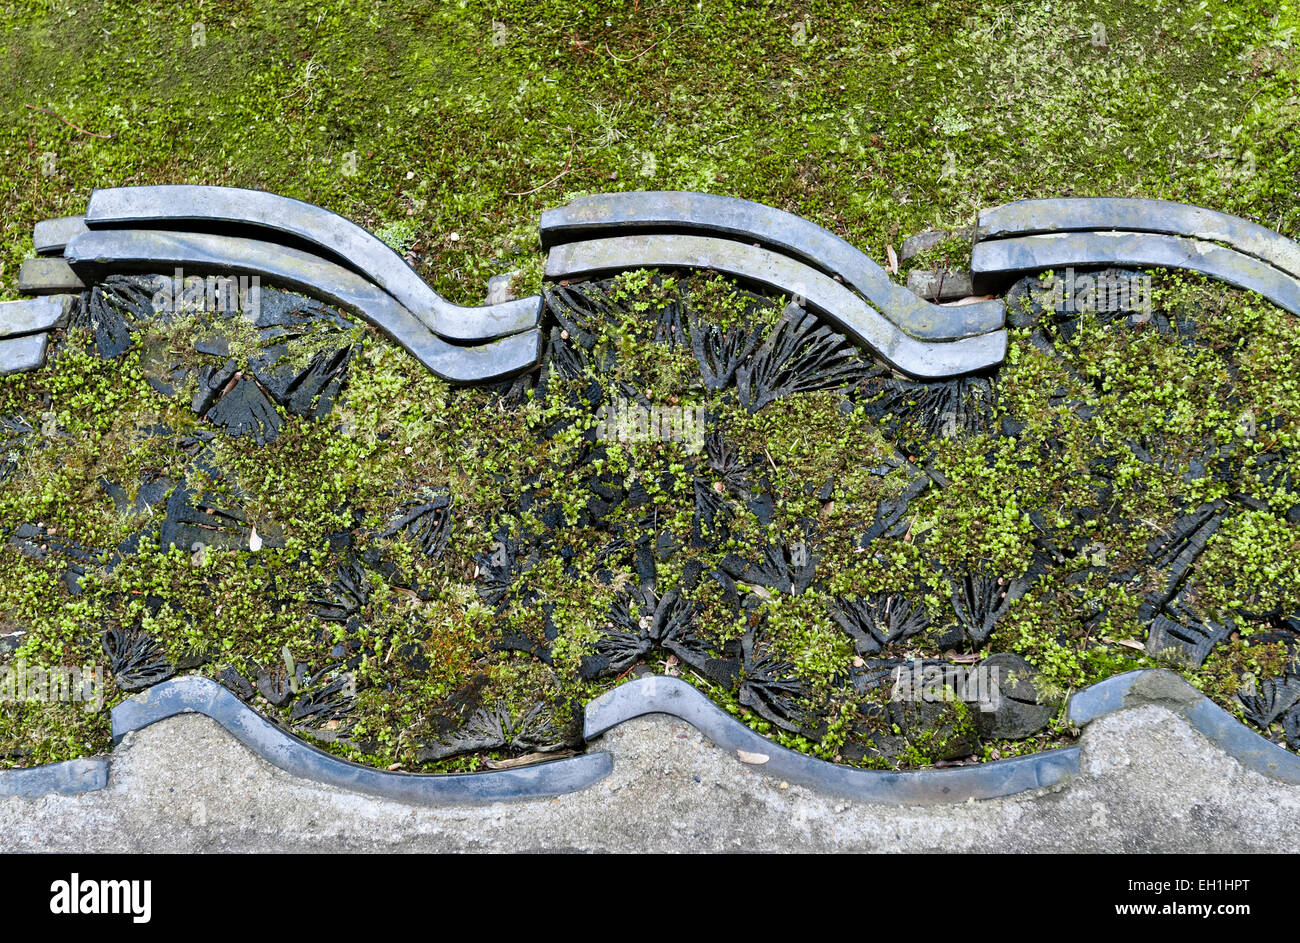 Koto-in Zen Buddhist temple, Daitoku-ji, Kyoto, Japan. A decorative edging of tiles set into the moss covered ground - Stock Image